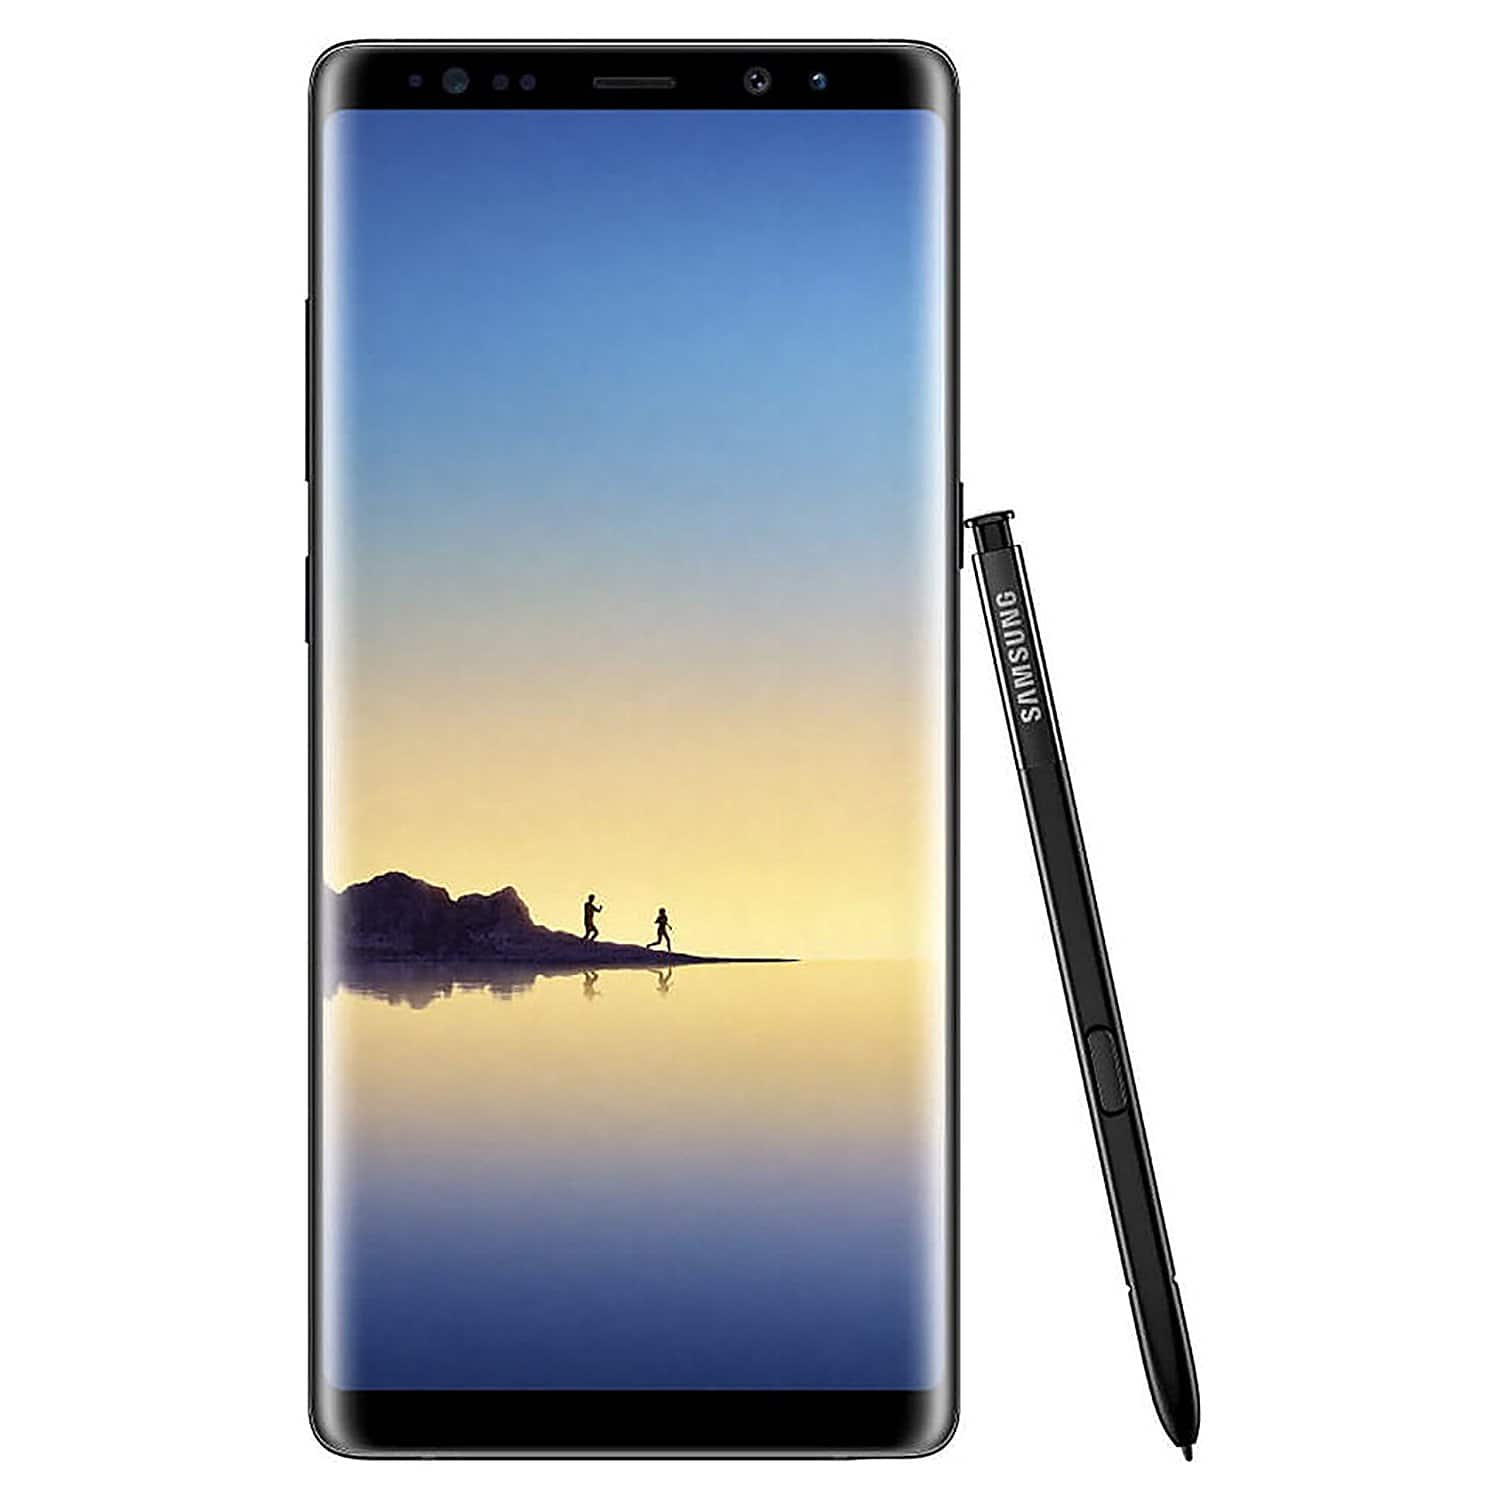 note 8 at amazon $634.99